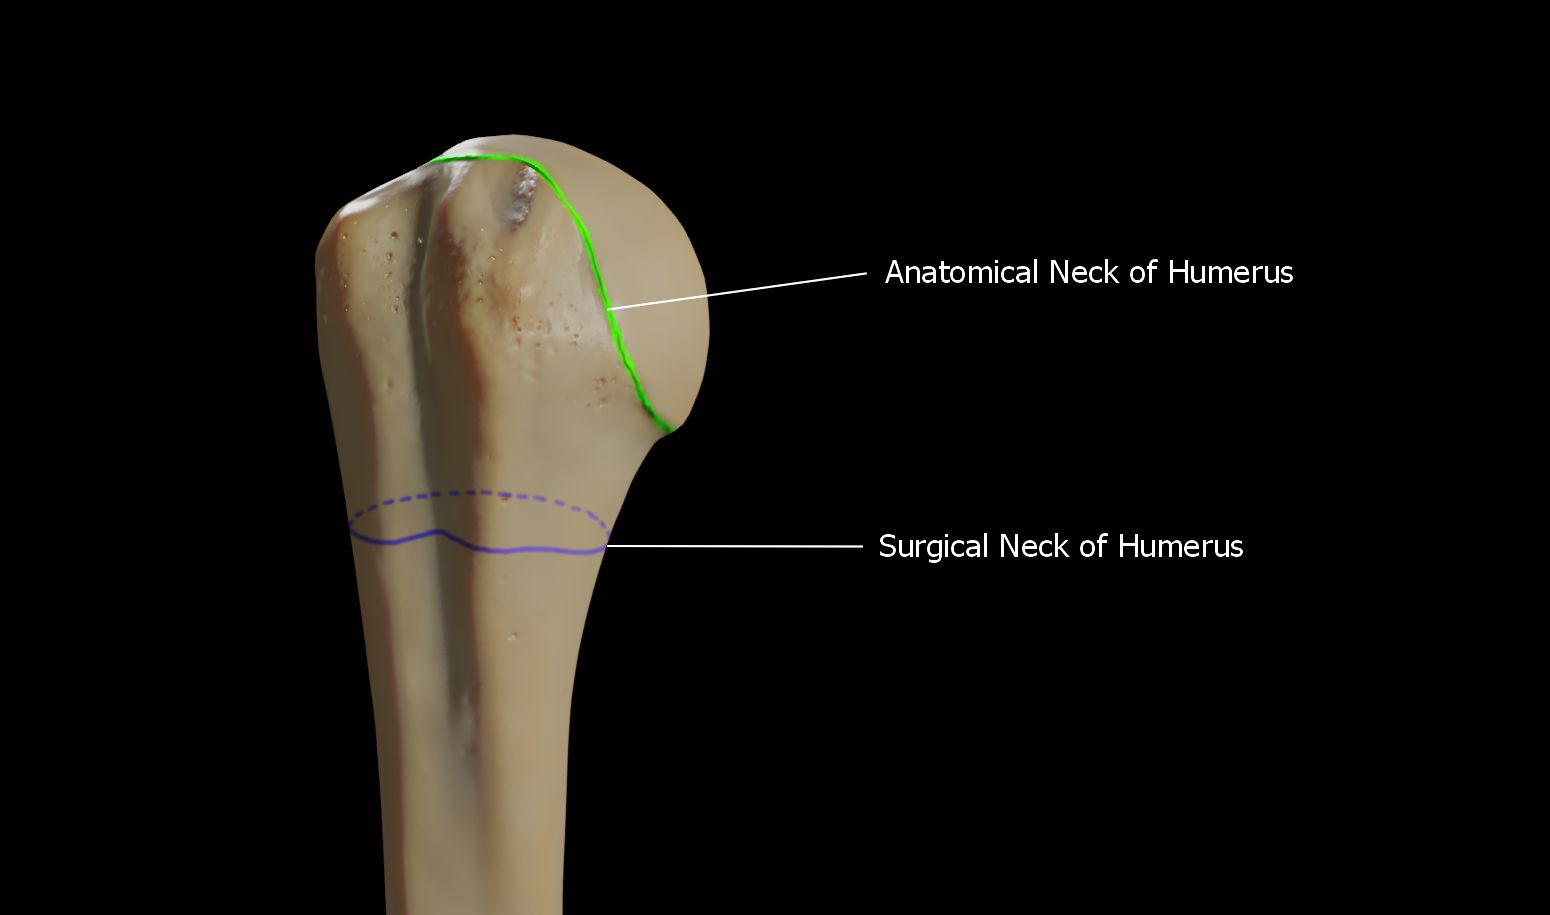 Anatomical and surgical neck of humerus